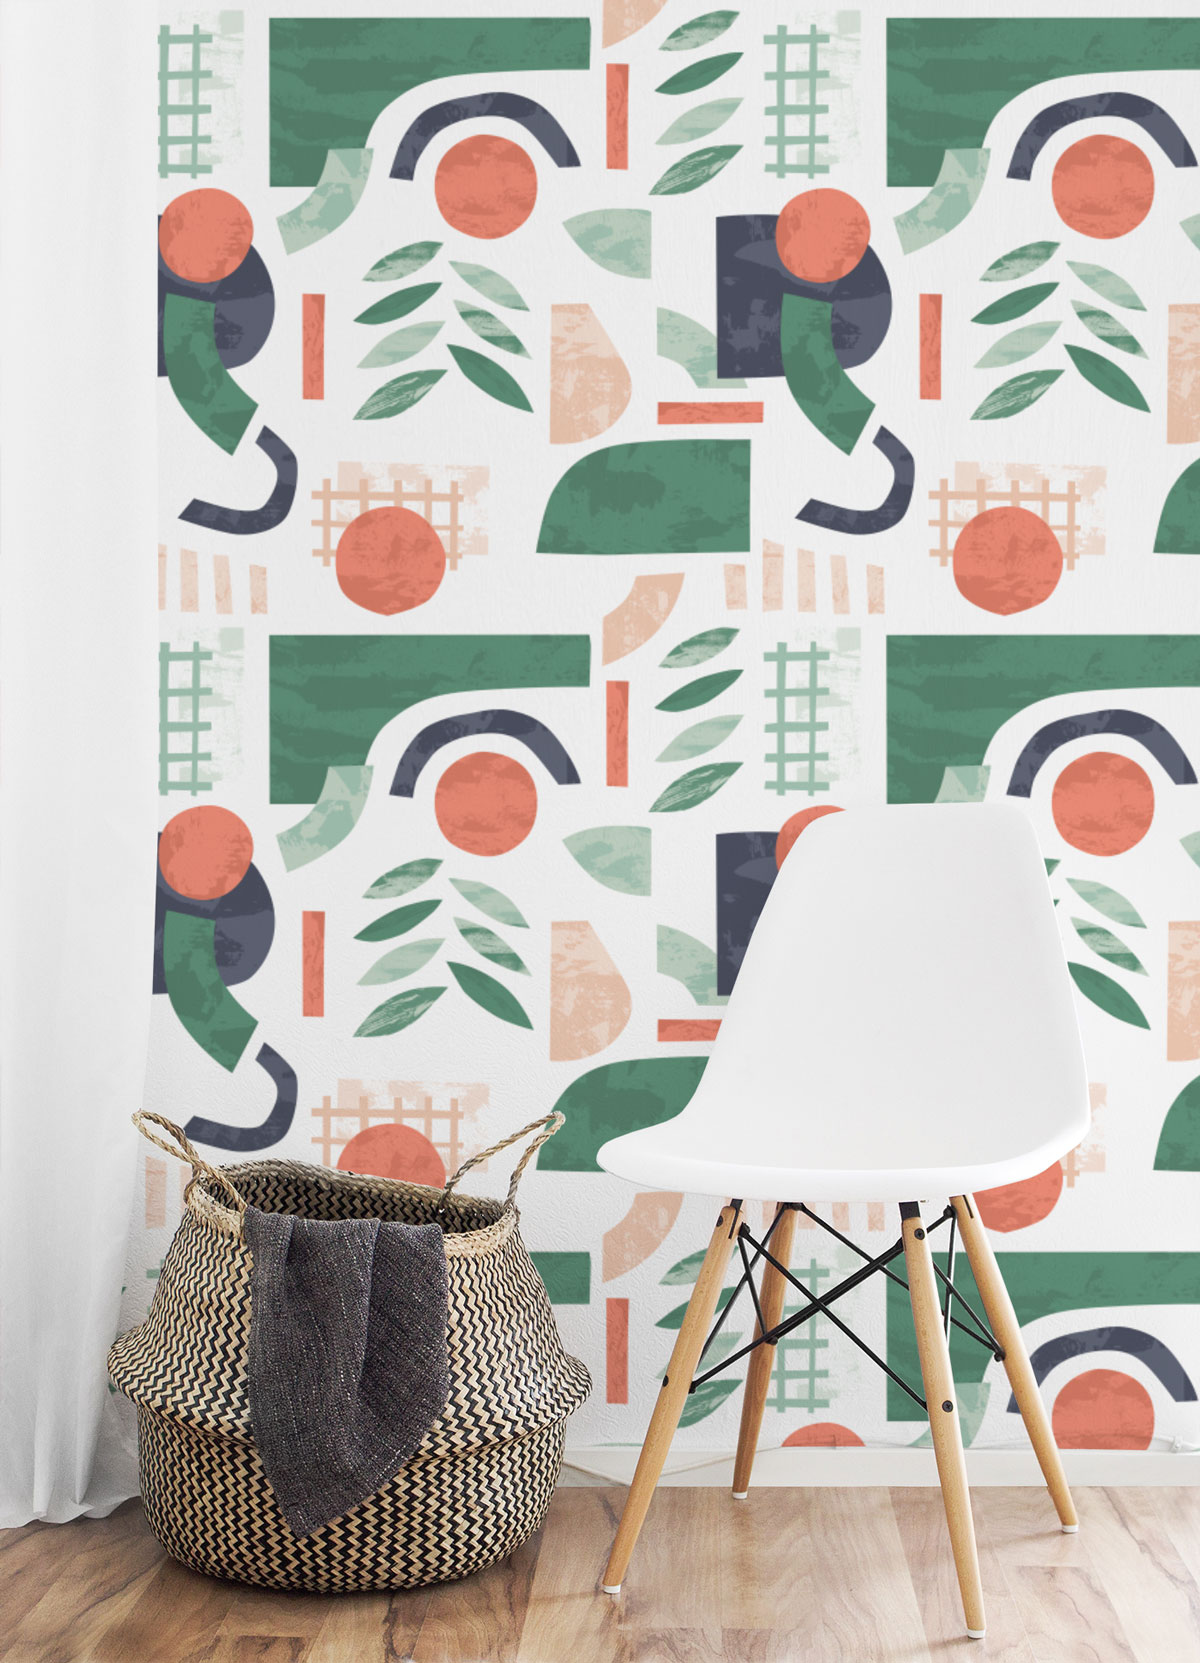 Shake it Up Peel and Stick Wallpaper - A playful wall makeover solution for any space, each wallpaper is easy to apply and fully removable!